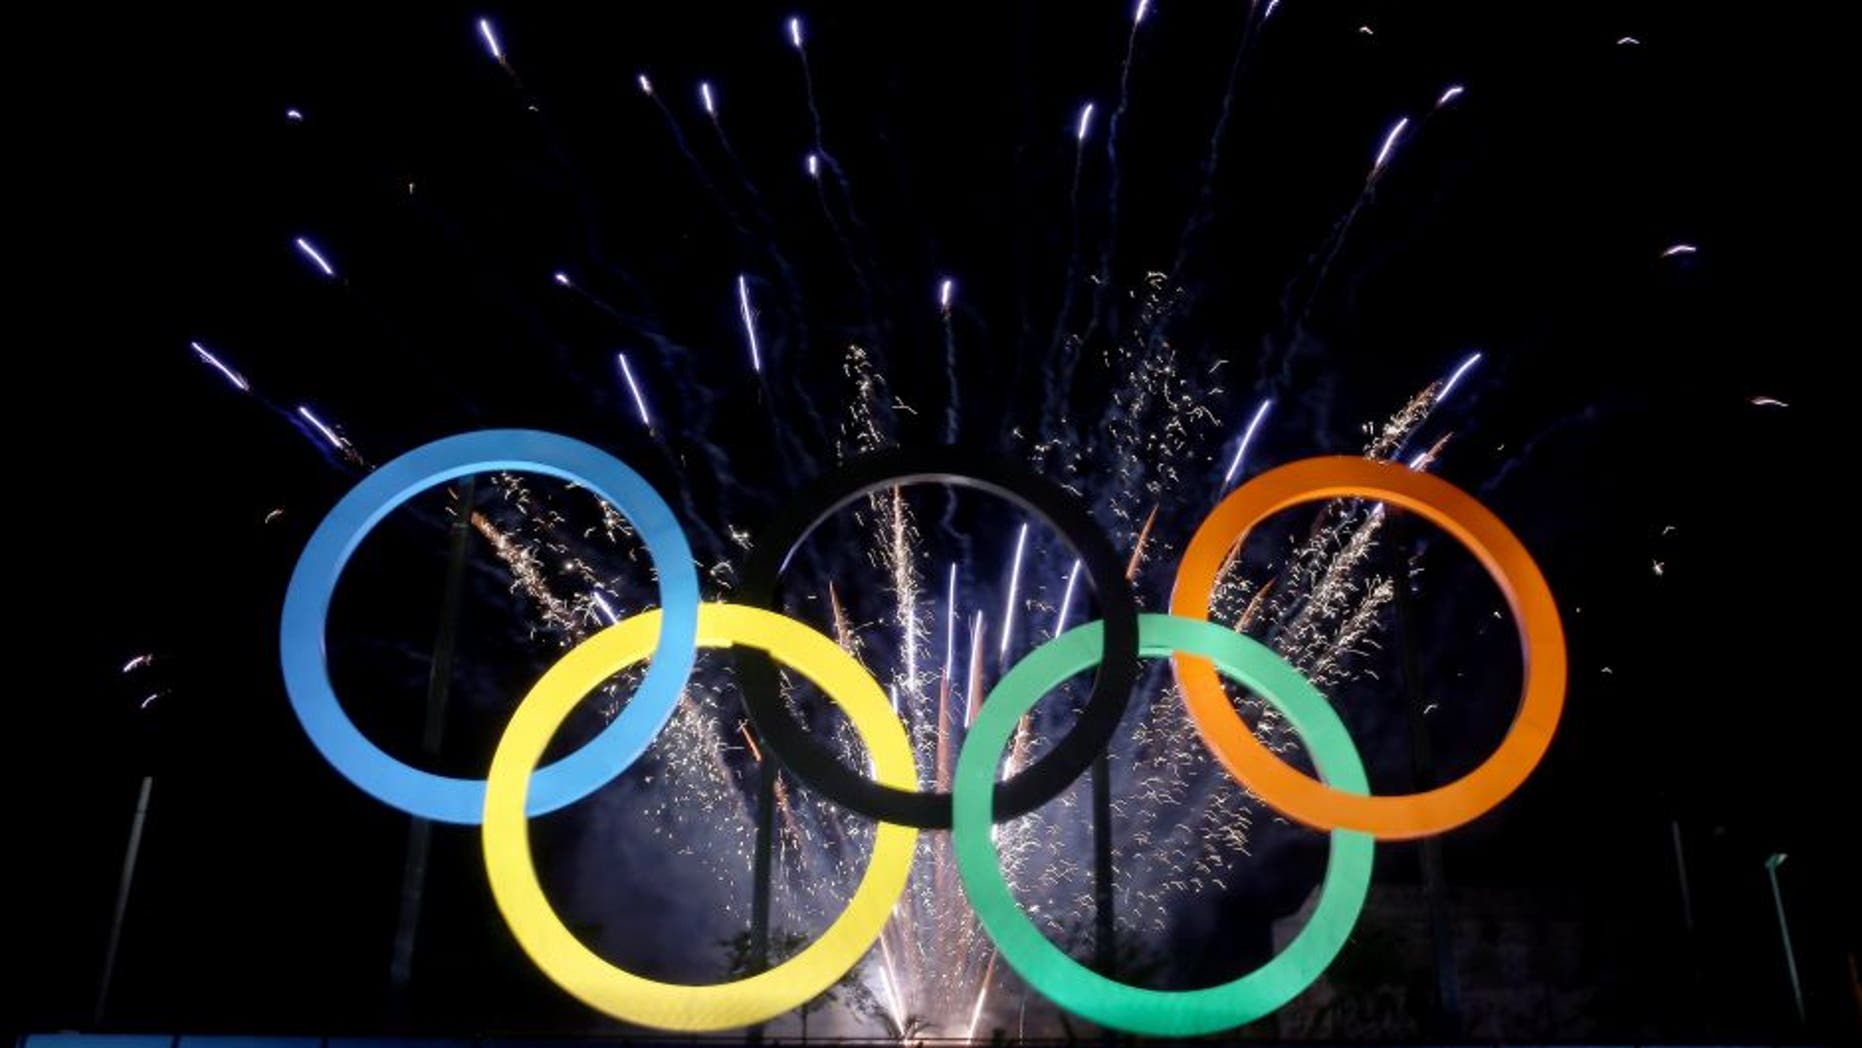 RIO DE JANEIRO, BRAZIL - MAY 20: The Olympic Rings are unveiled at a ceremony at Madureira Park May 20, 2015 in Rio de Janeiro, Brazil. (Photo by Matthew Stockman/Getty Images)